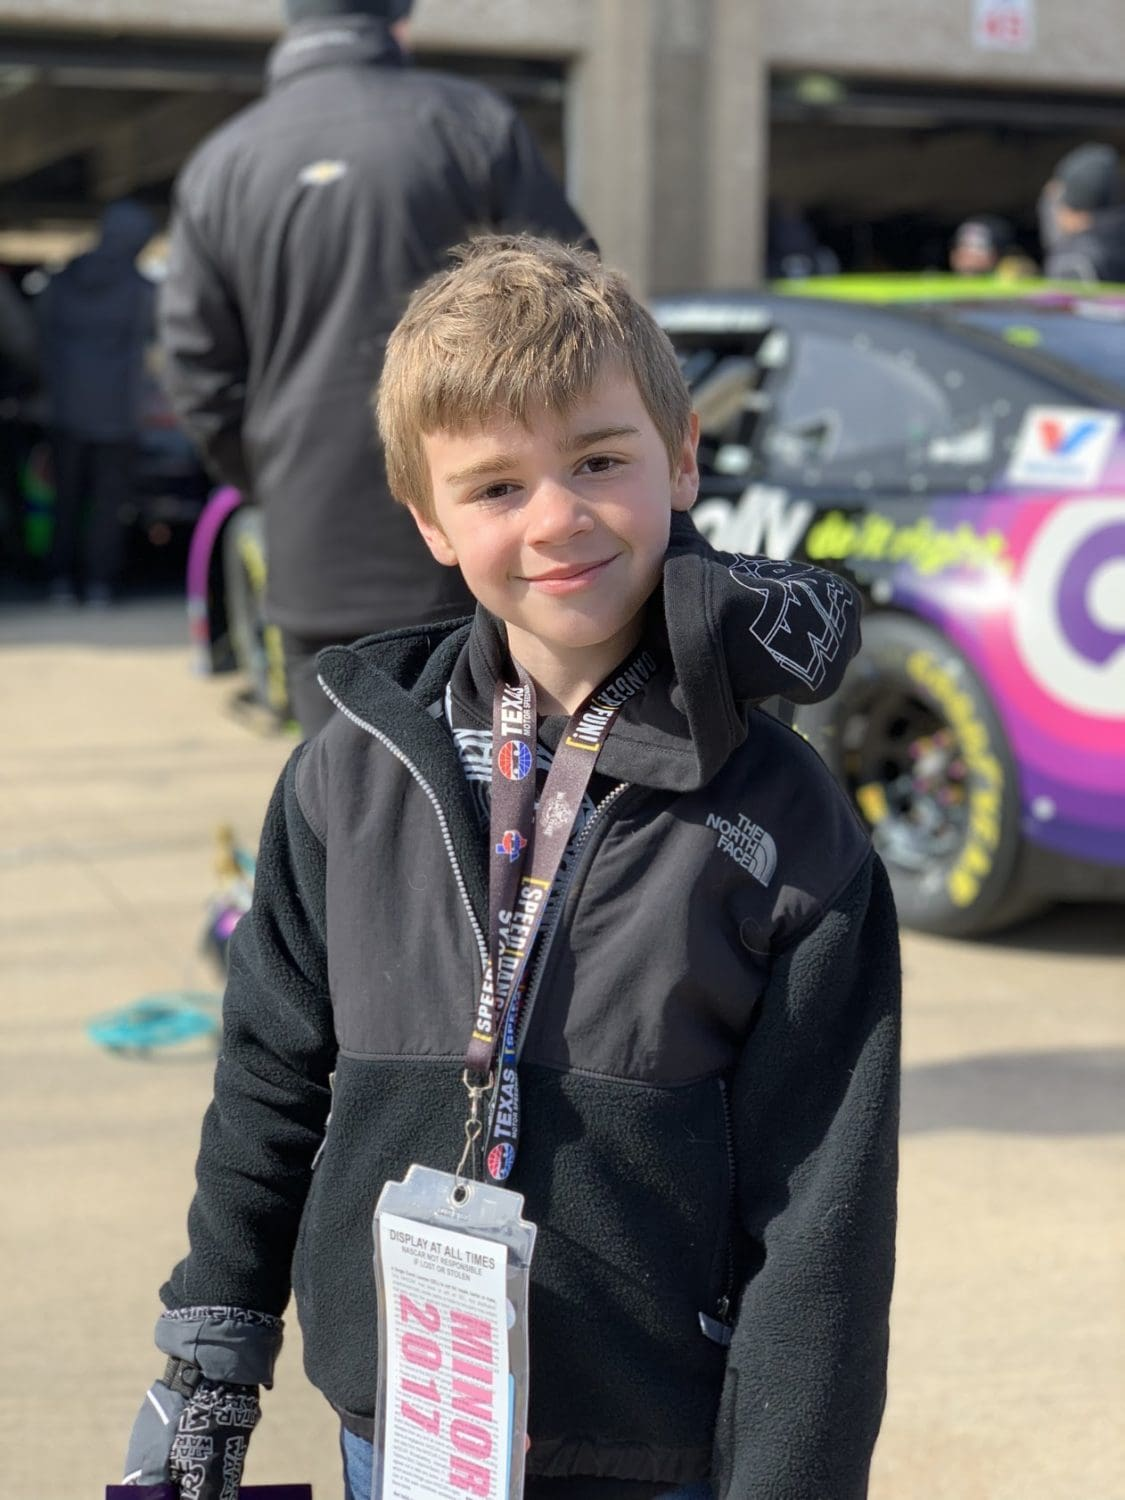 boy at Texas Motor Speedway